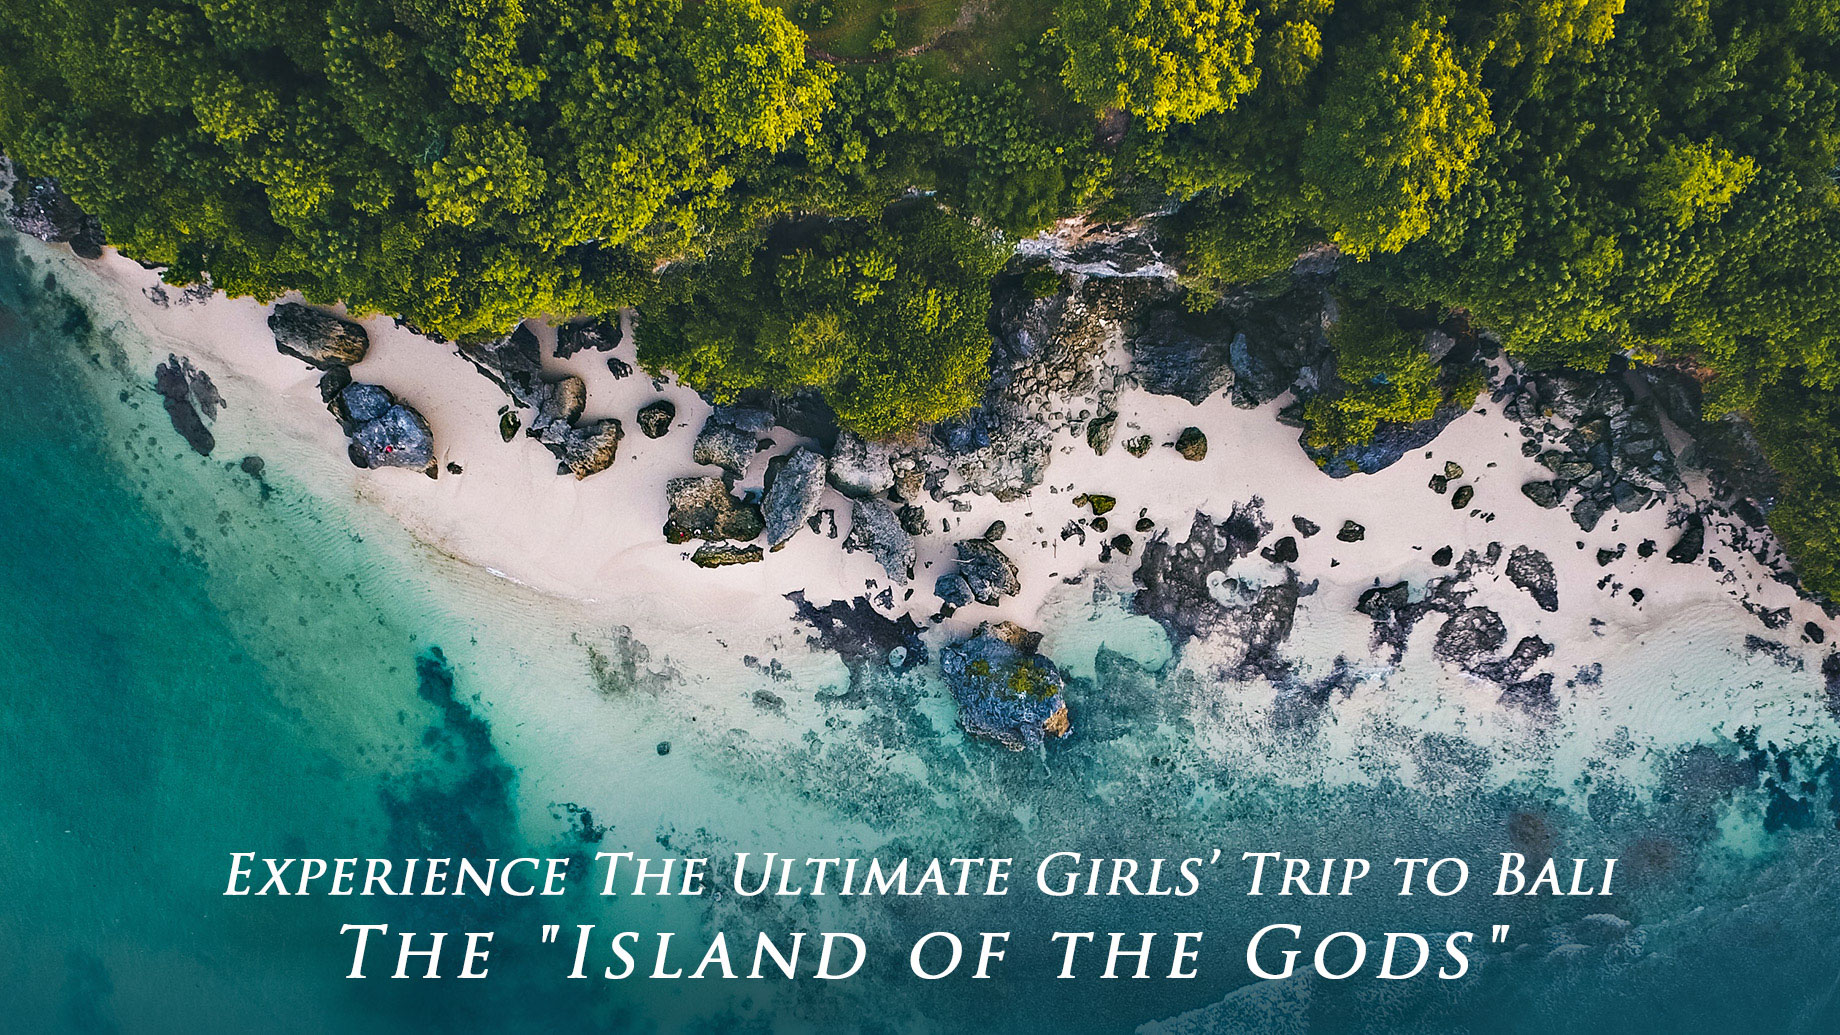 Experience The Ultimate Girls' Trip to Bali - The Island of the Gods